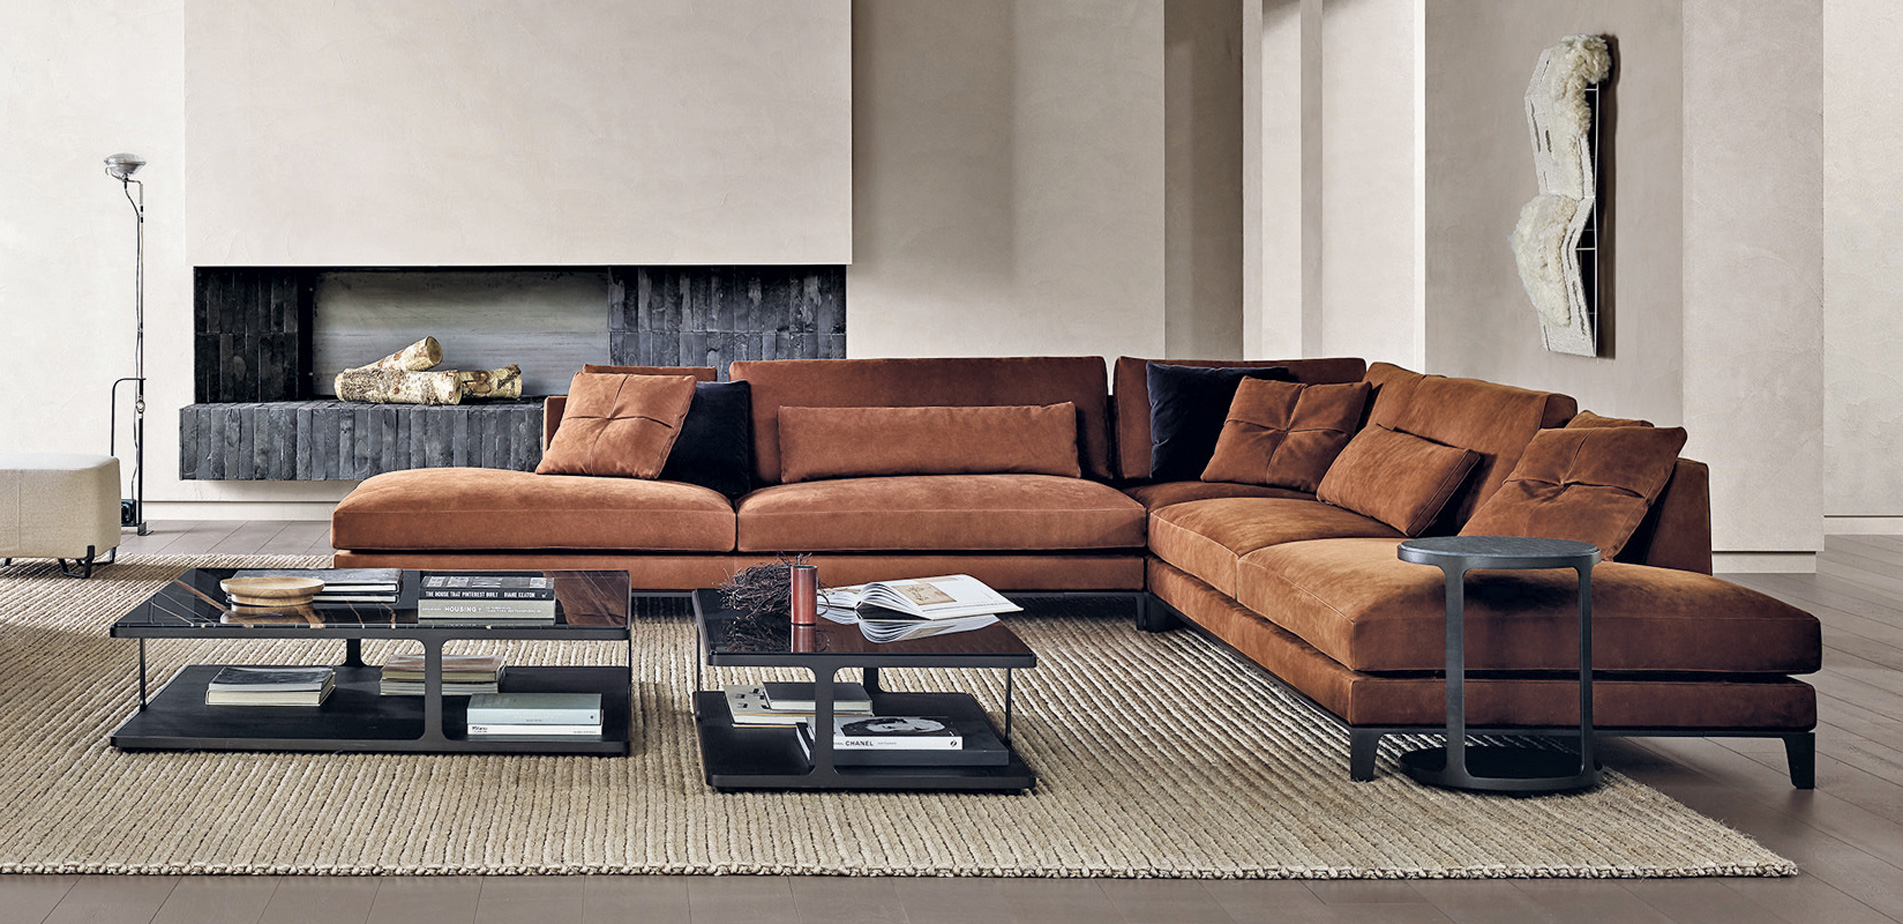 Poliform Bellport Sectional Sofa